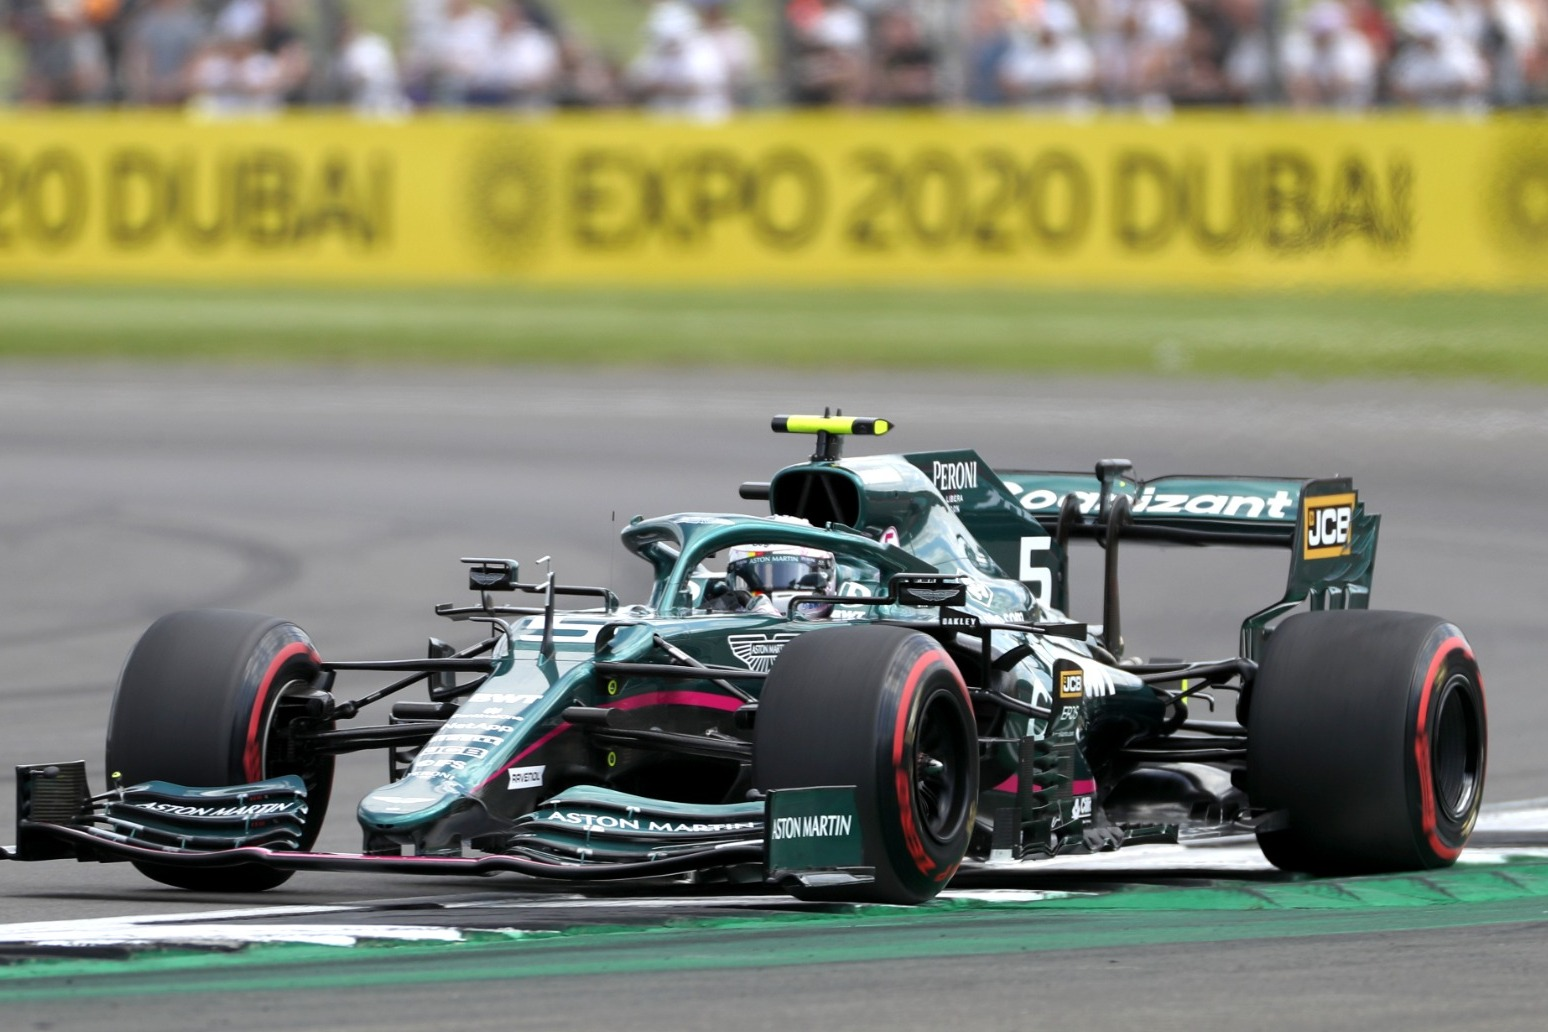 Aston Martin to appeal Sebastian Vettel's disqualification from Hungarian GP